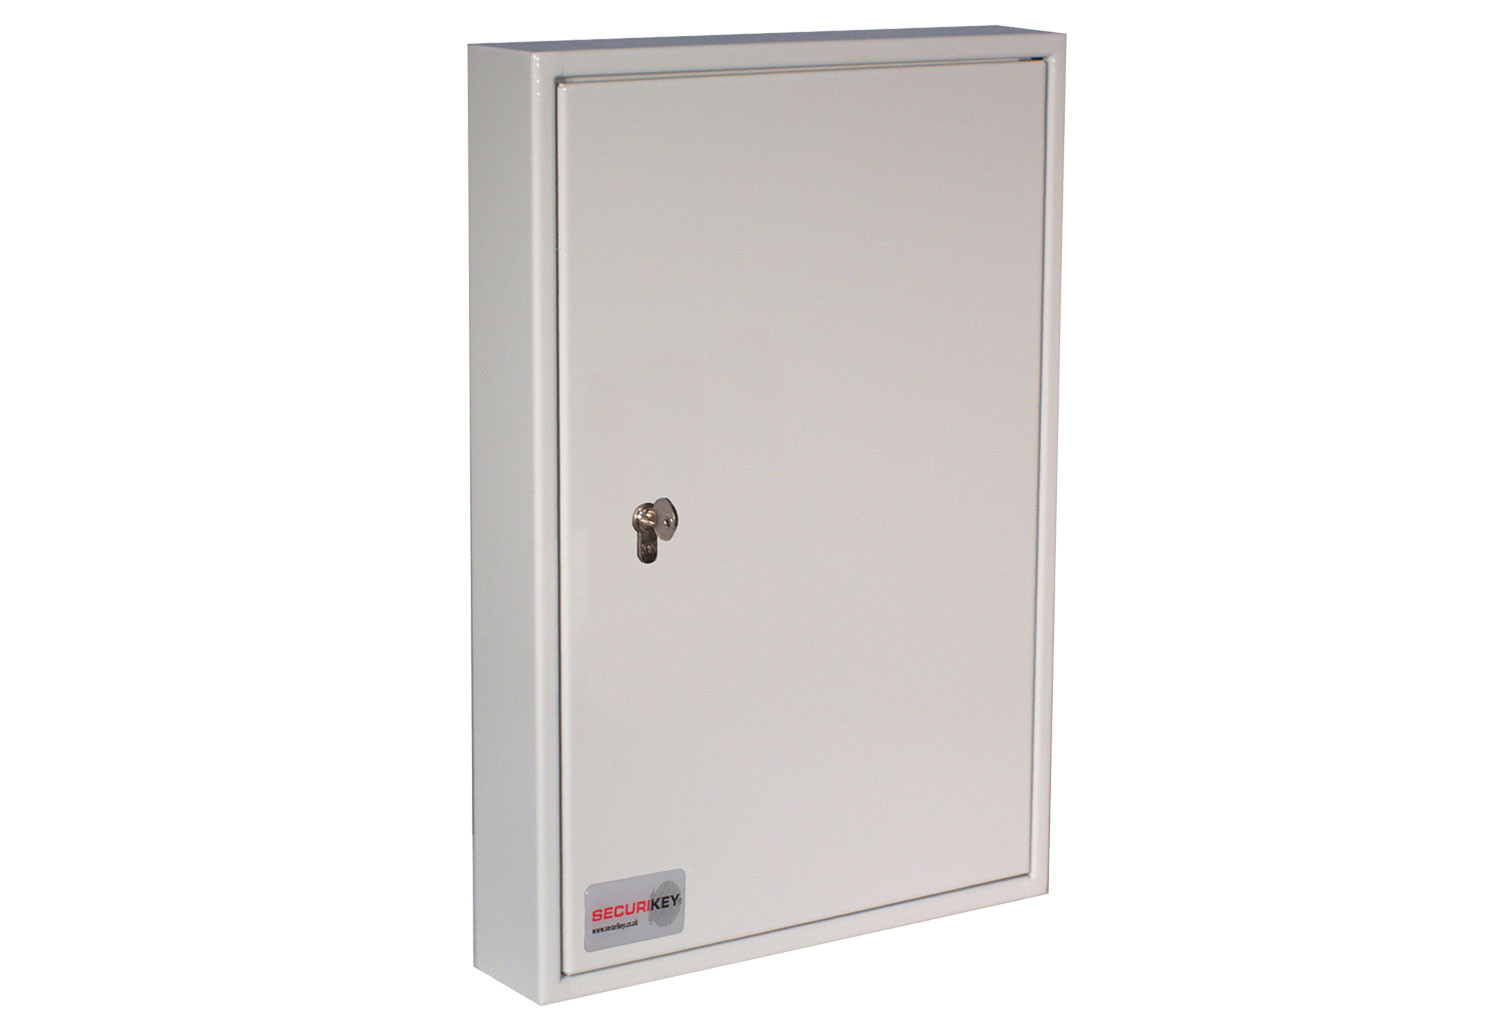 Securikey Key Vault 100 Security Key Cabinet